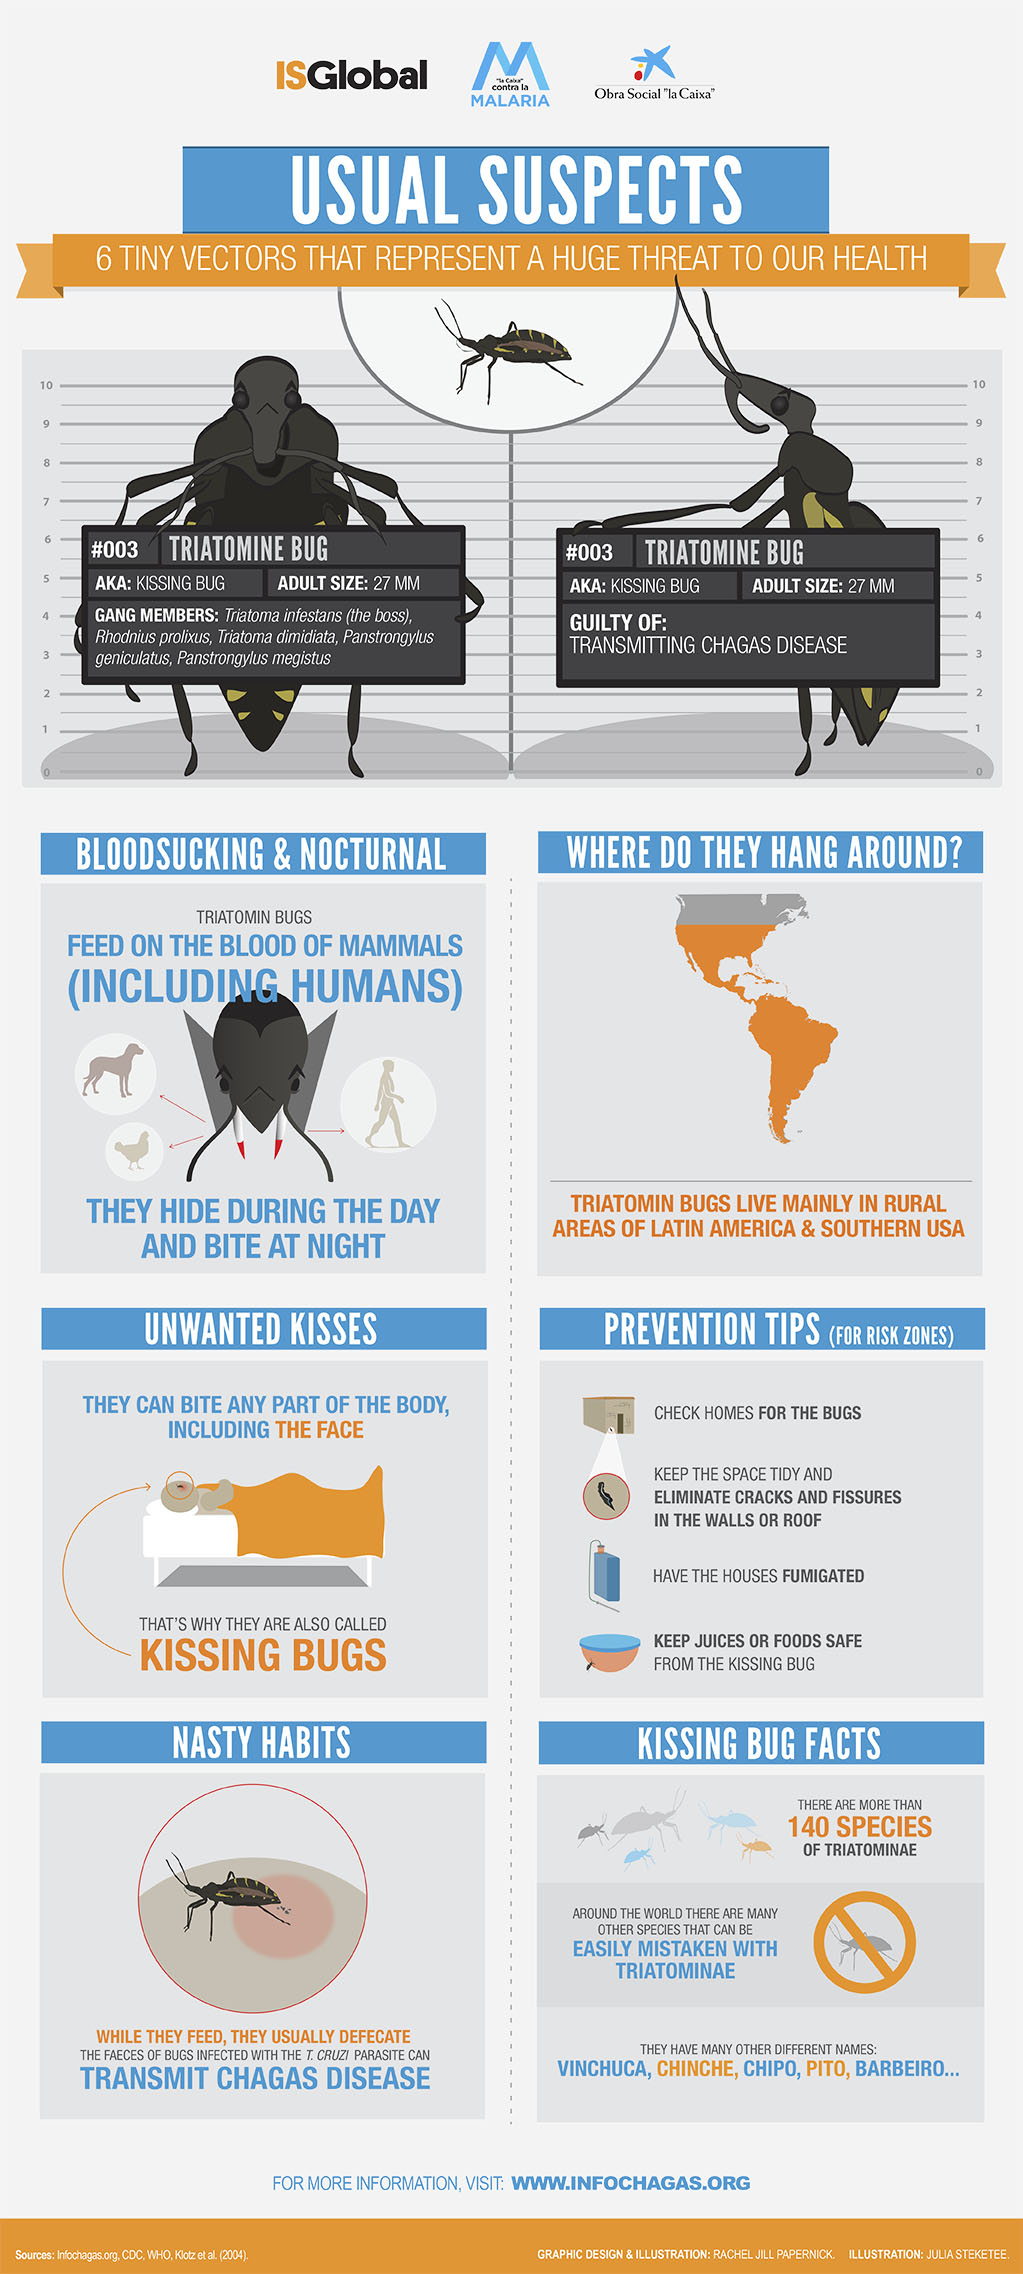 Infographic Usual Suspect 003: Triatomine Bug